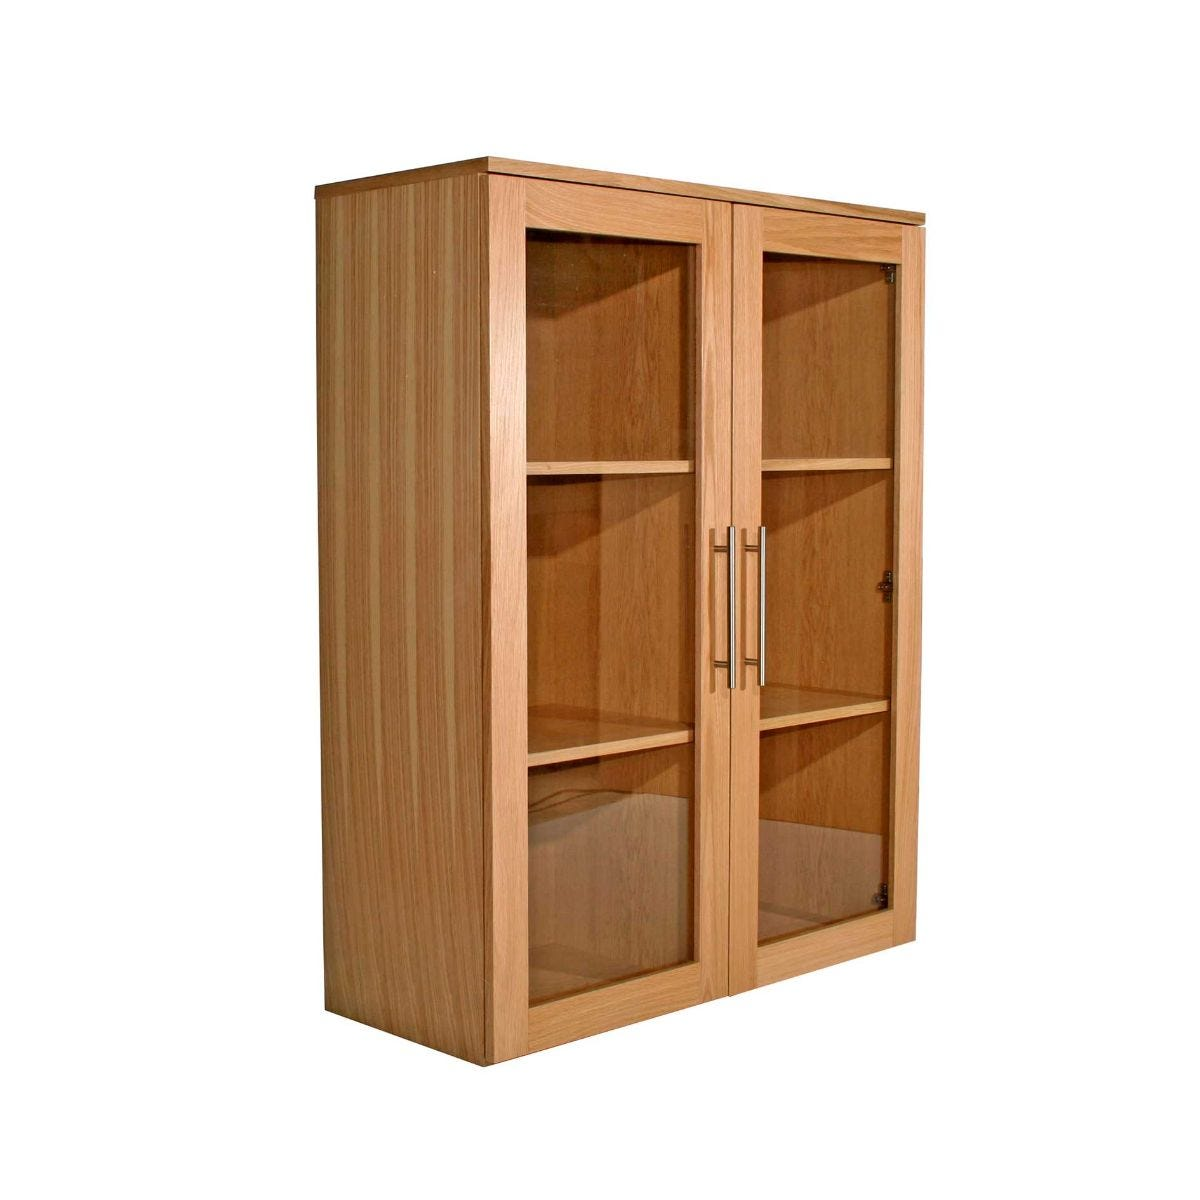 Oakwood AW6326-WBC Wide Glazed Bookcase H1150xW900xD360mm